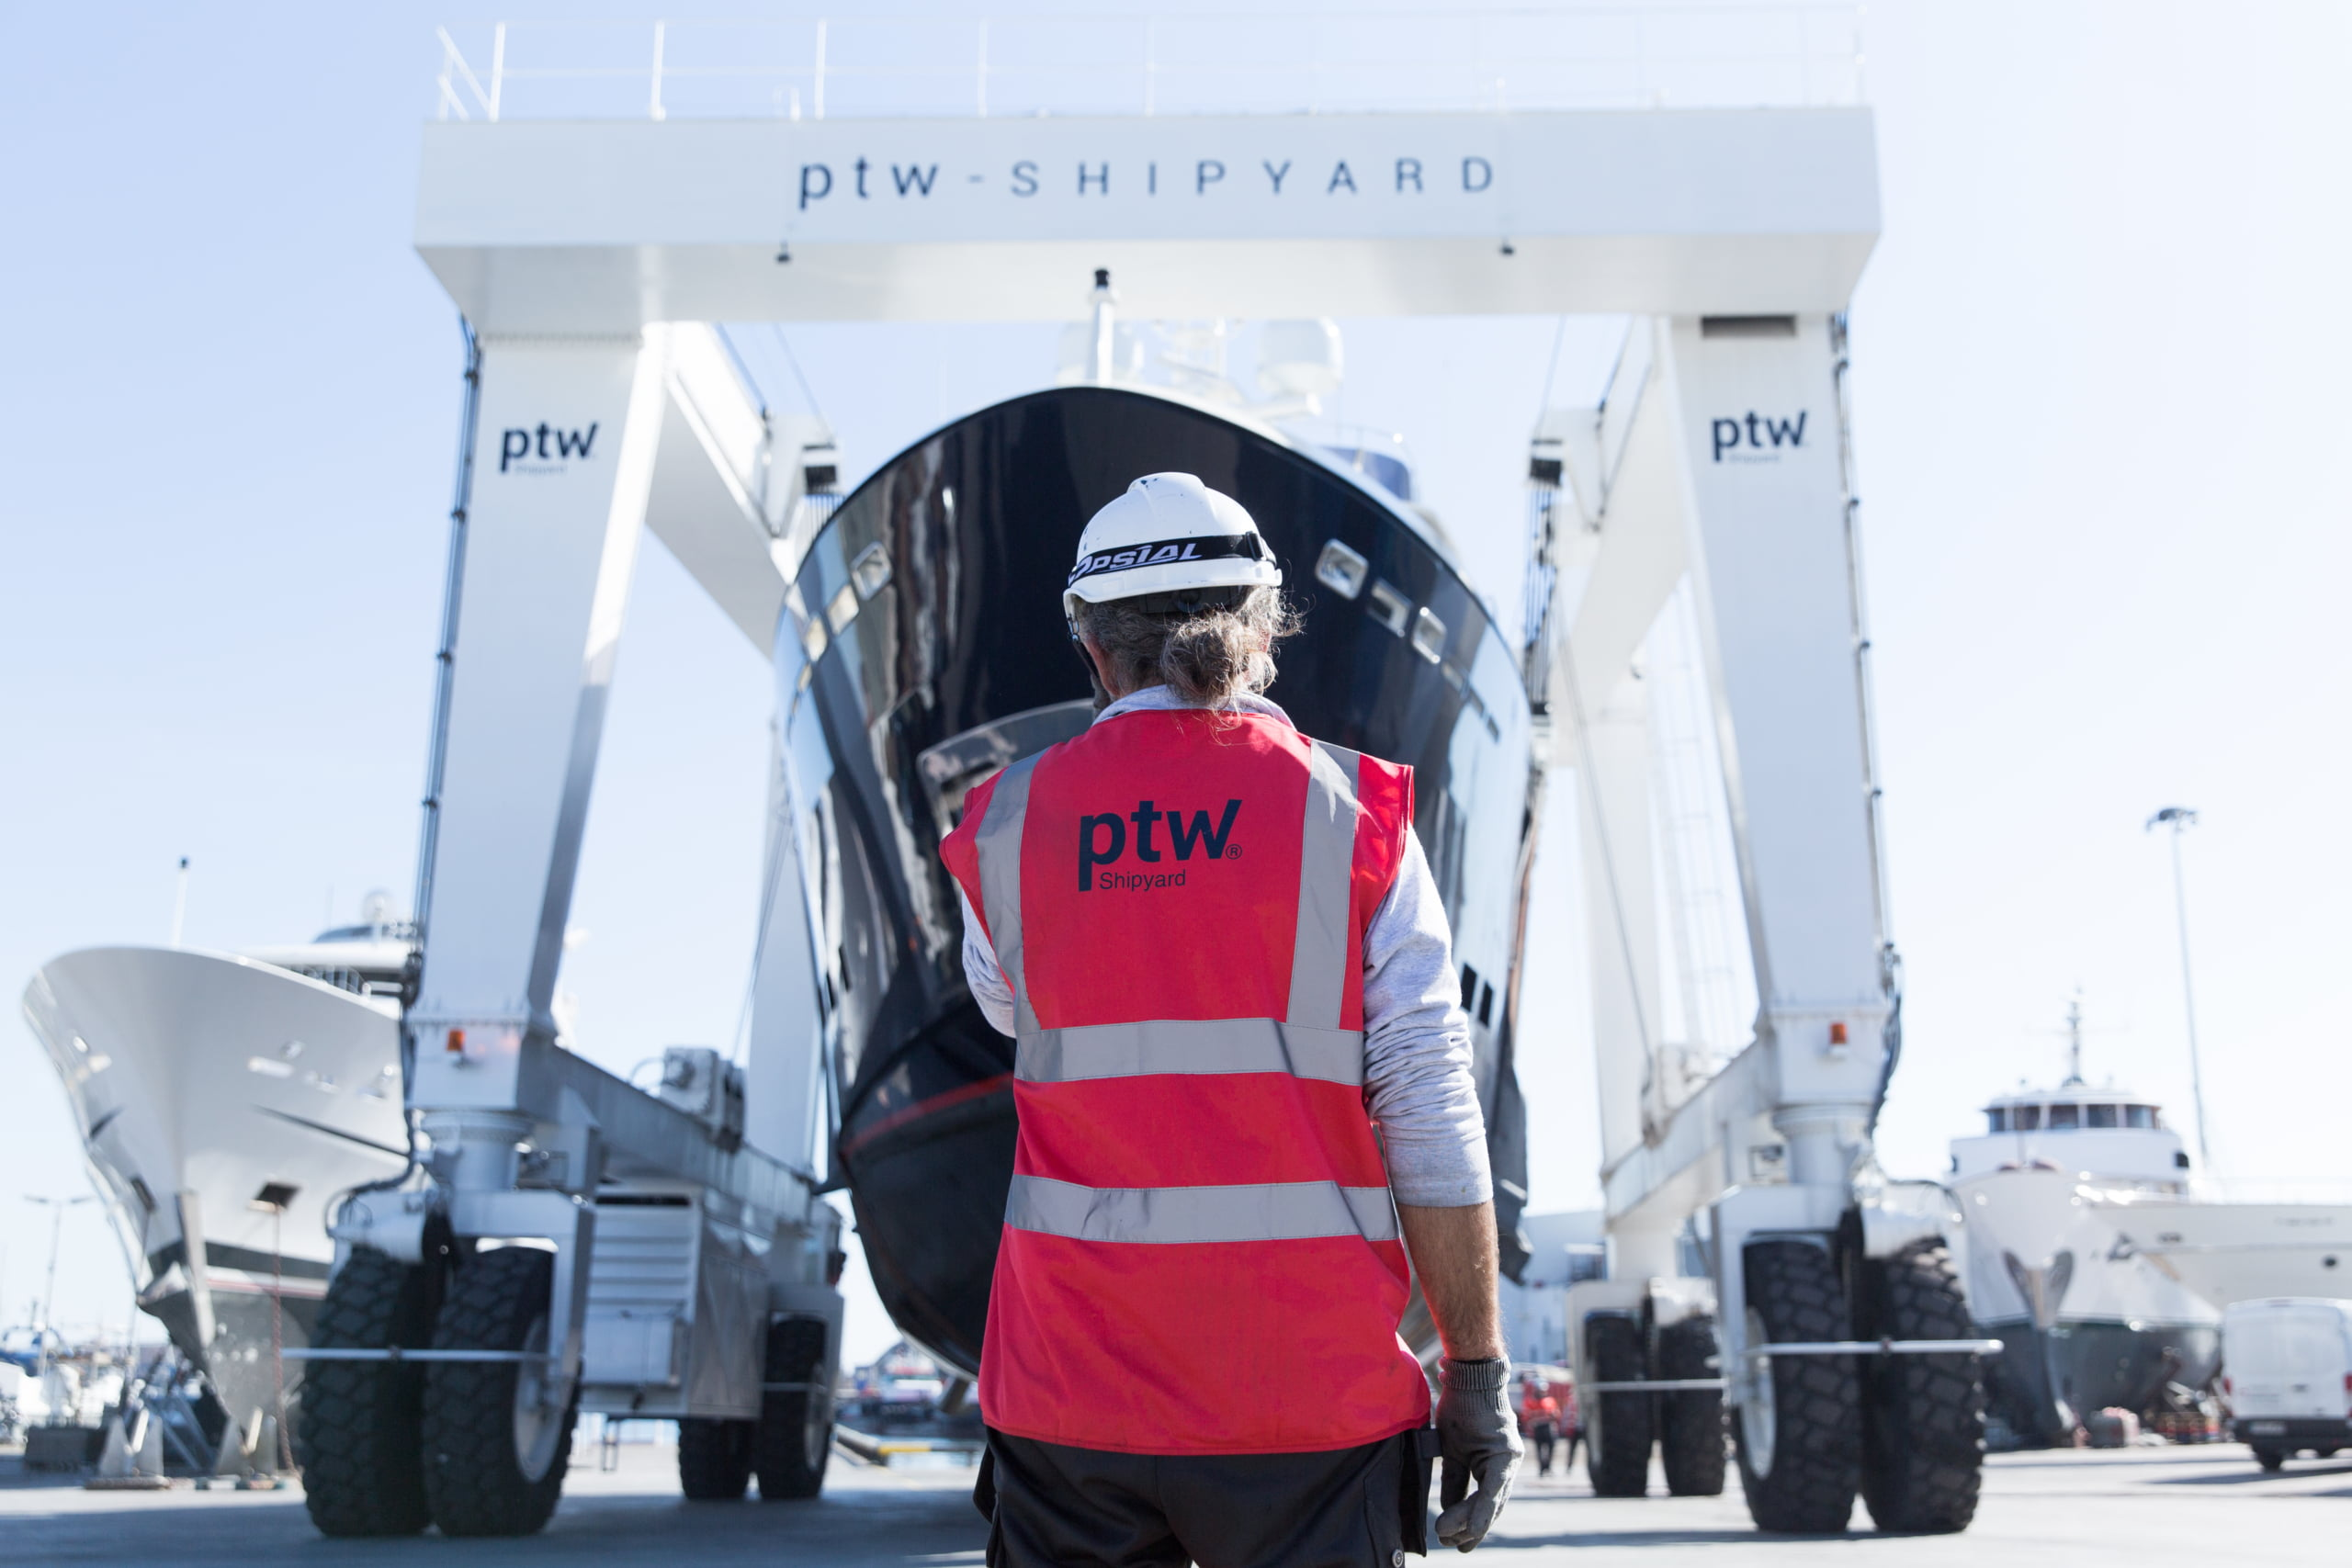 PTW 114 scaled Fairwinds future for Shipyards on the Catalan Coast